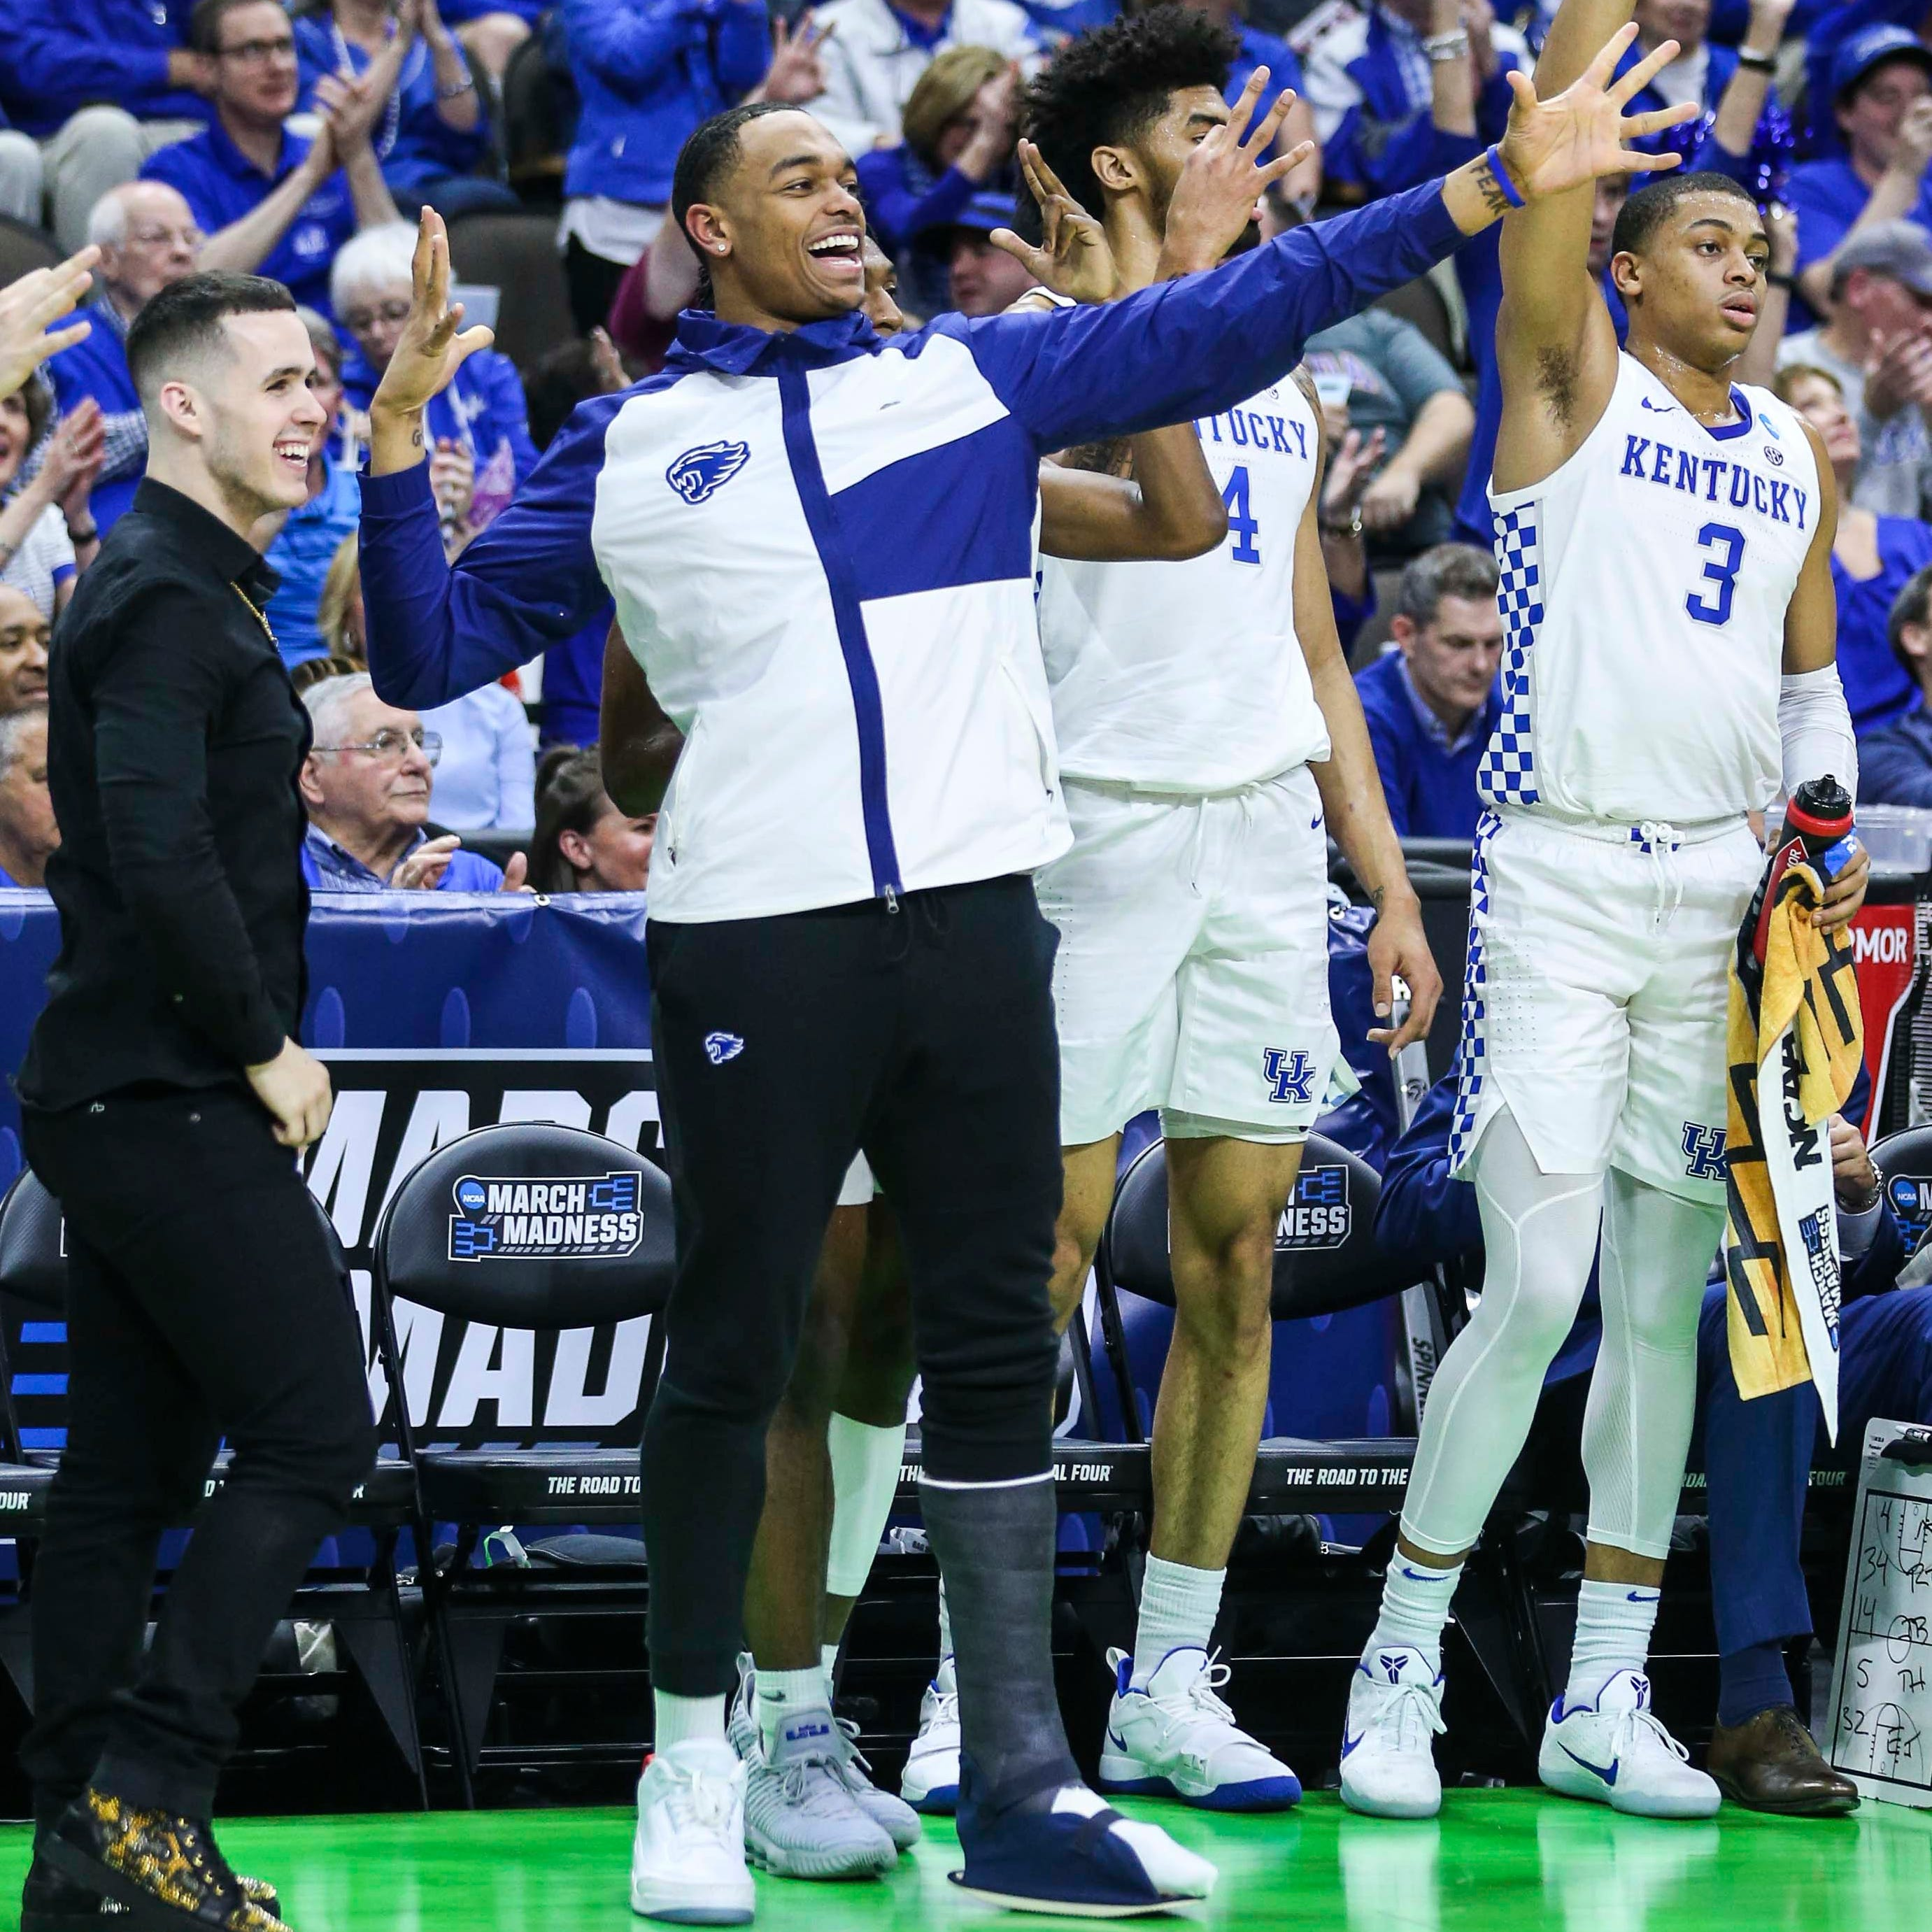 John Calipari can't imagine PJ Washington playing for UK vs. Wofford